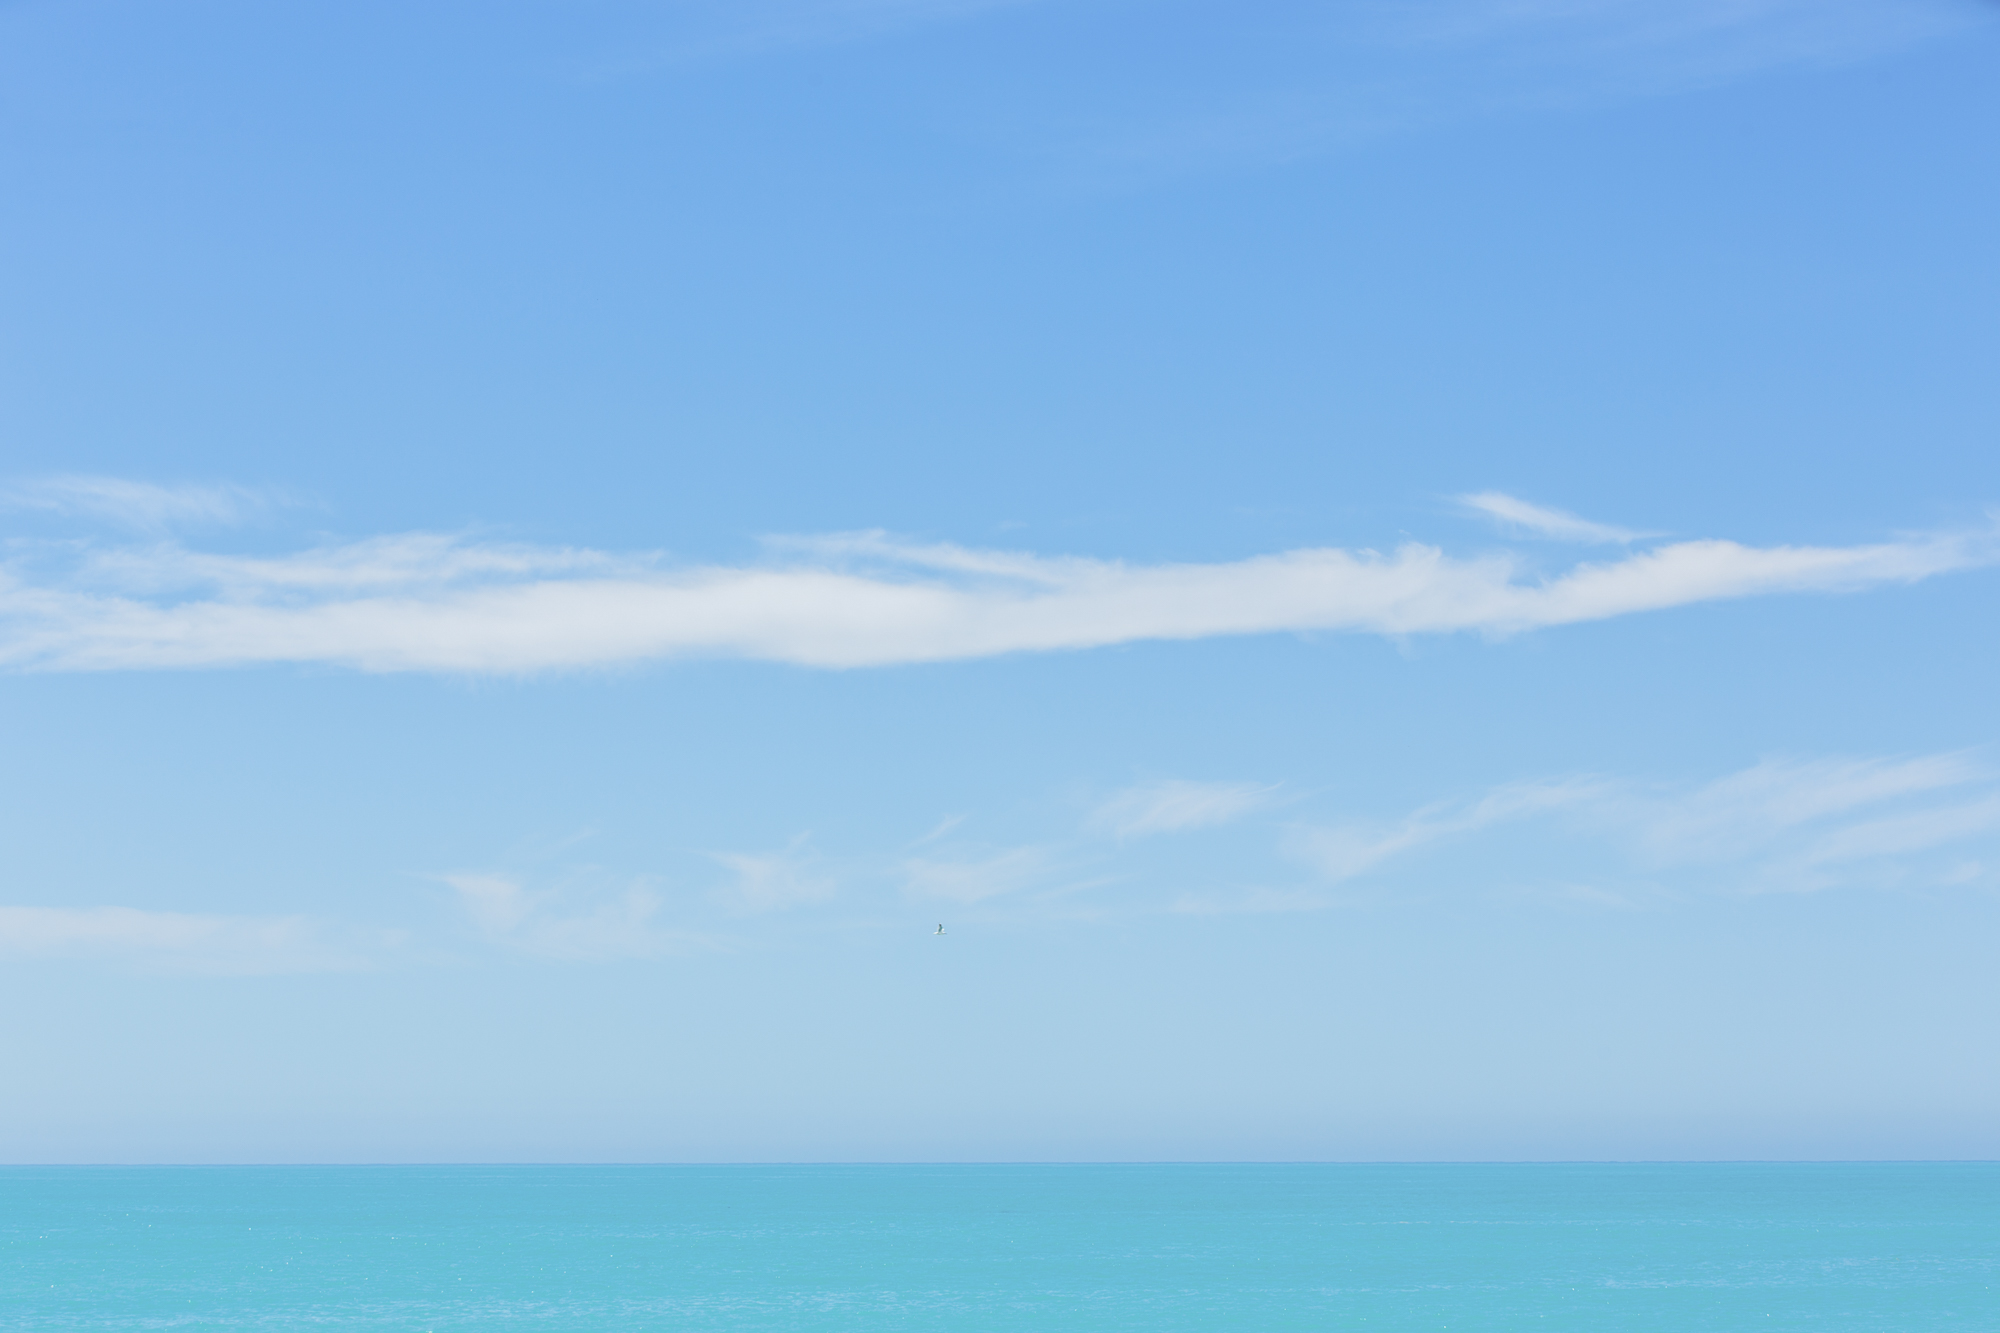 A view of the clouds over the sea